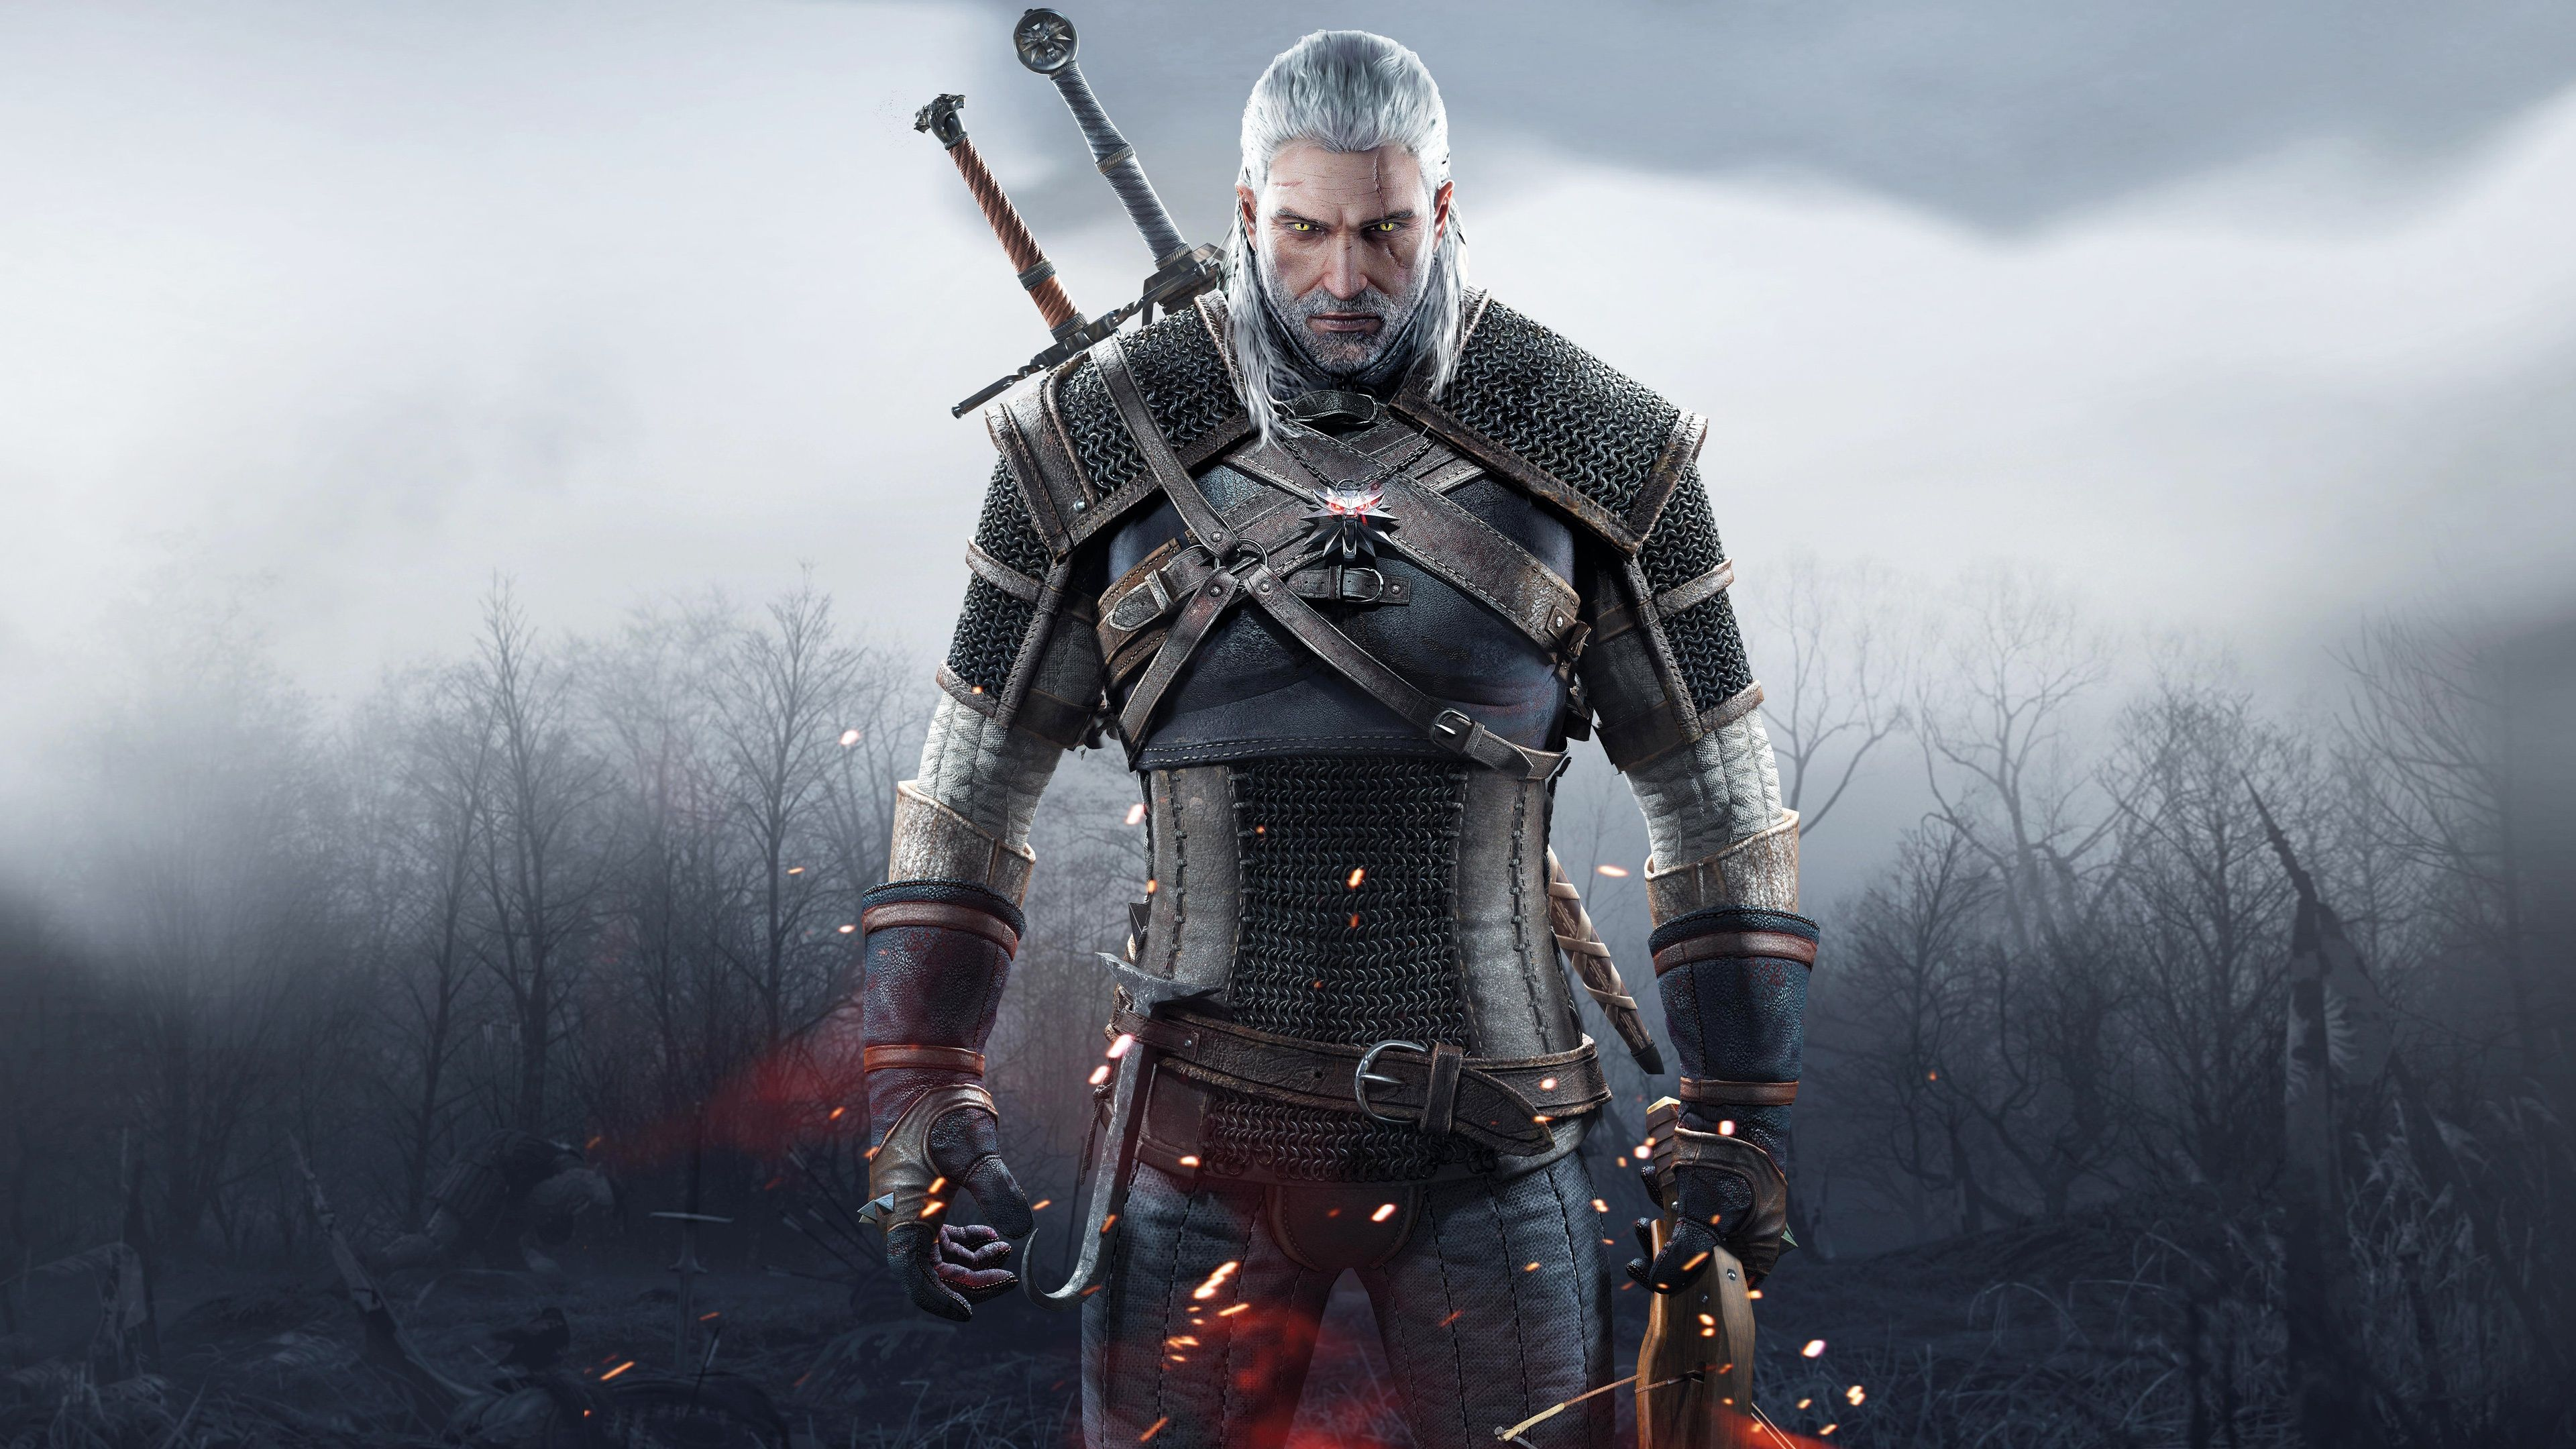 Witcher 3 Wild Geralt Of Rivia Ultra Hd 4k Wallpapers Witcher Wallpaper The Witcher 3 Witcher